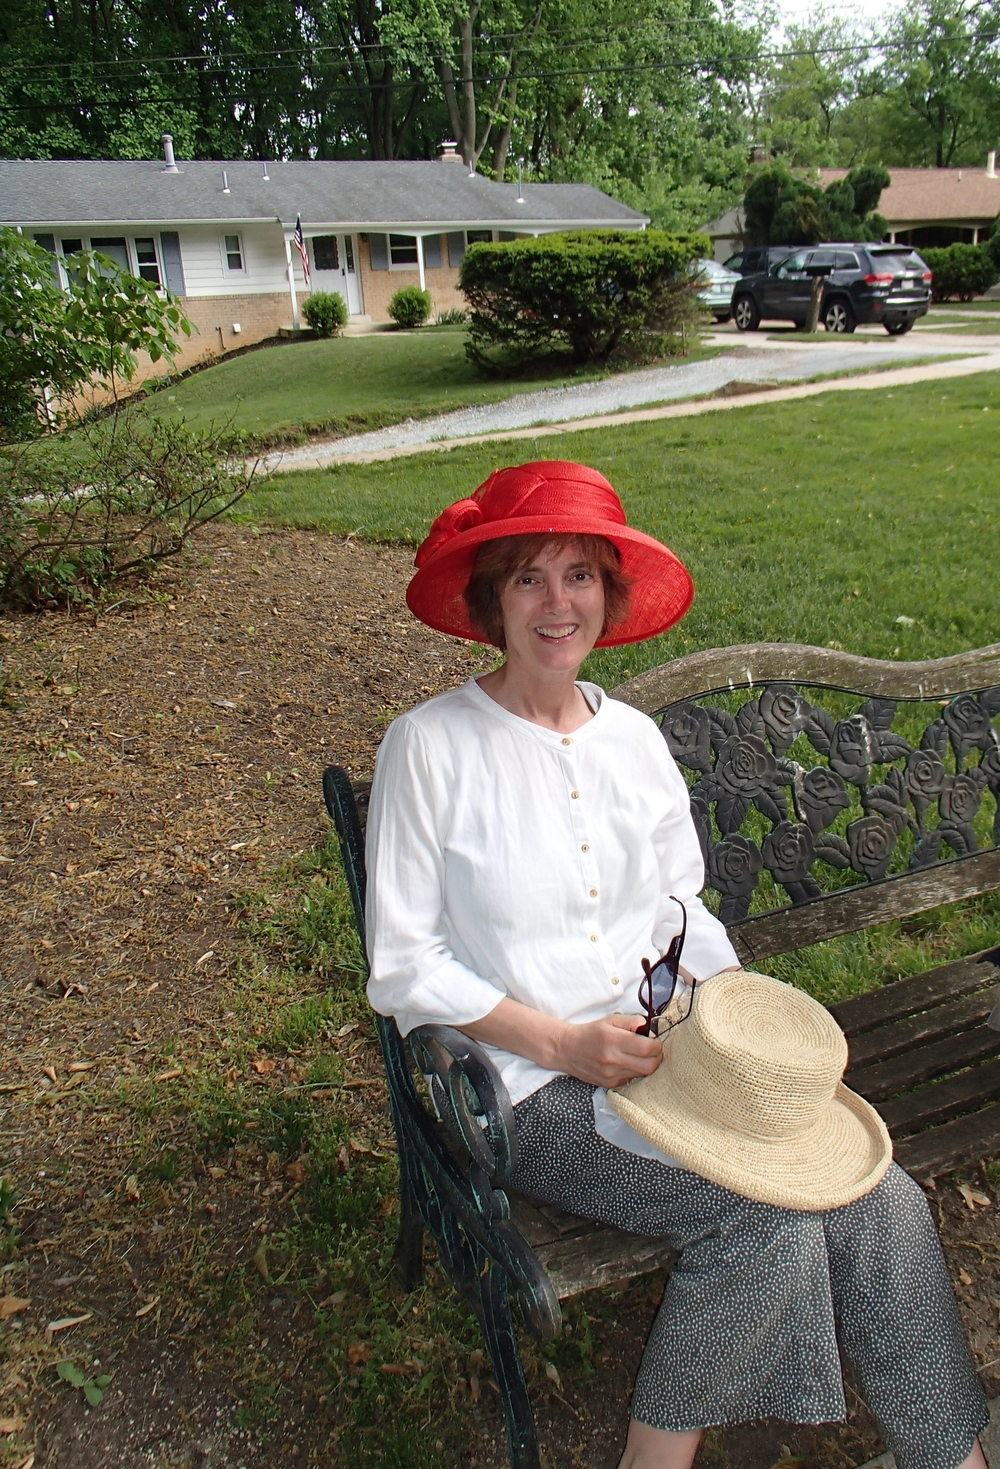 Mr. Goodwin's family member loved a staff member's red hat so much that she had to take a picture with it on